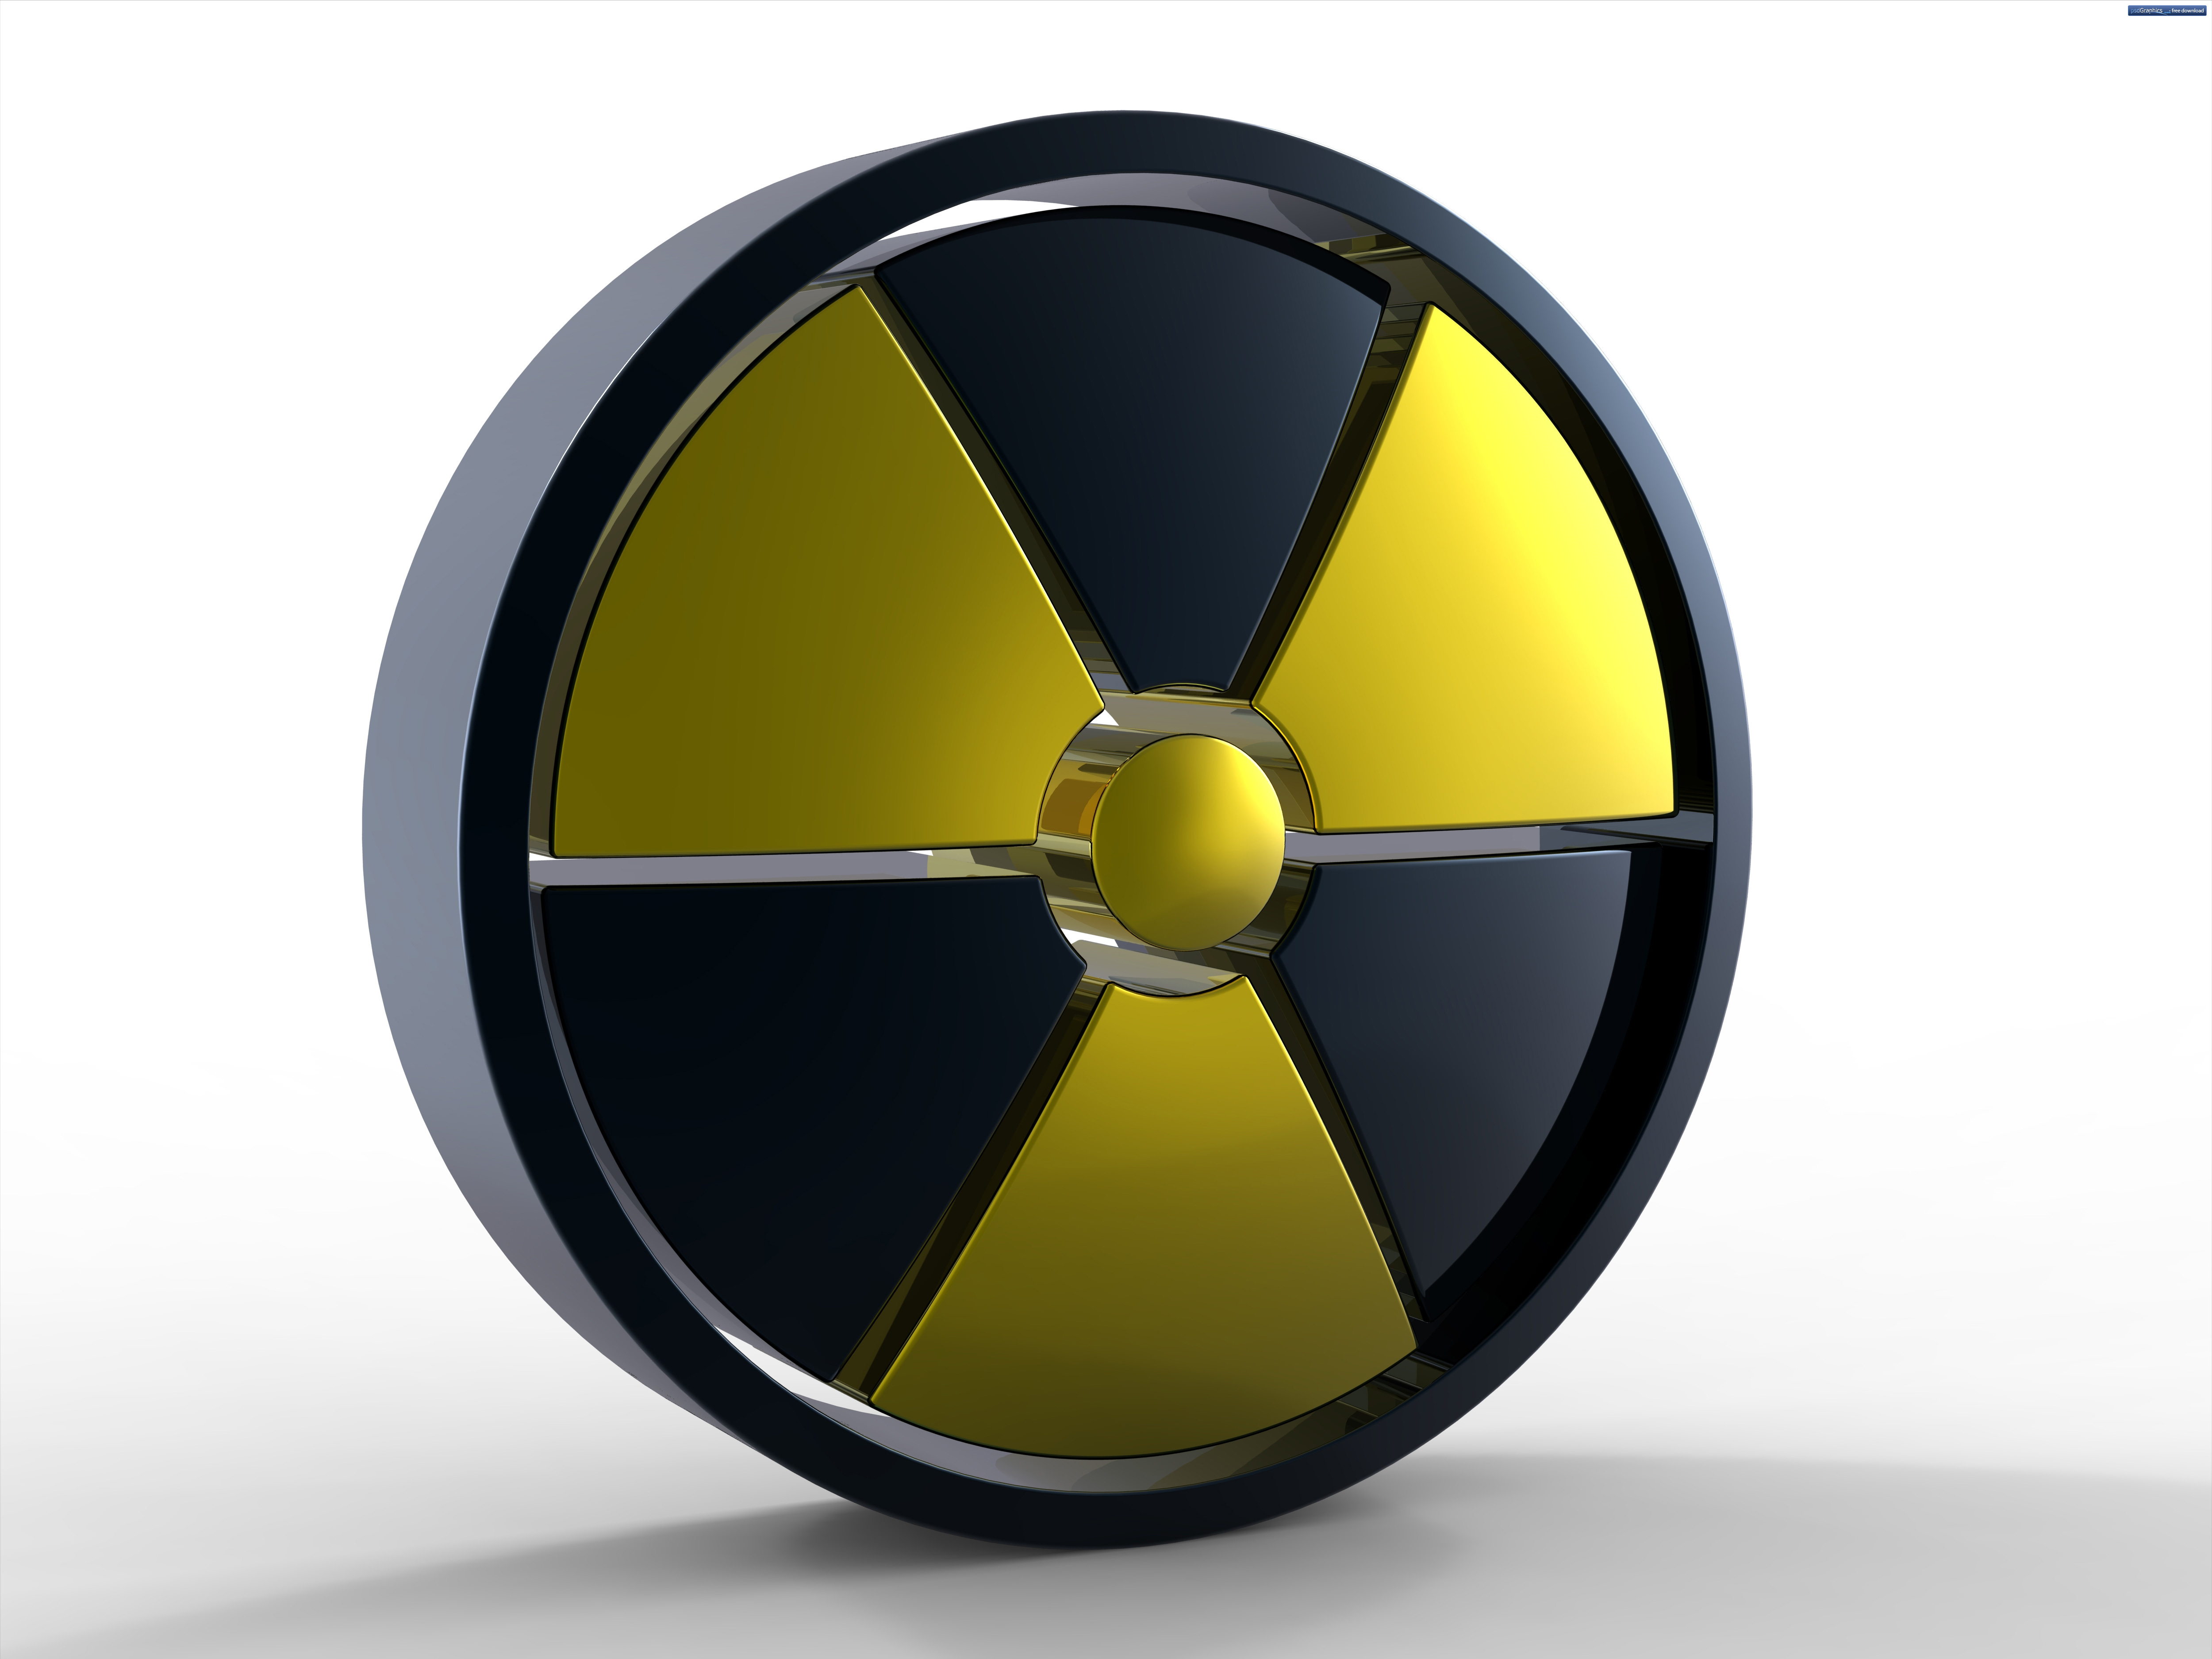 3d nuclear sign psdgraphics 3d nuclear sign radioactive warning symbol biocorpaavc Gallery